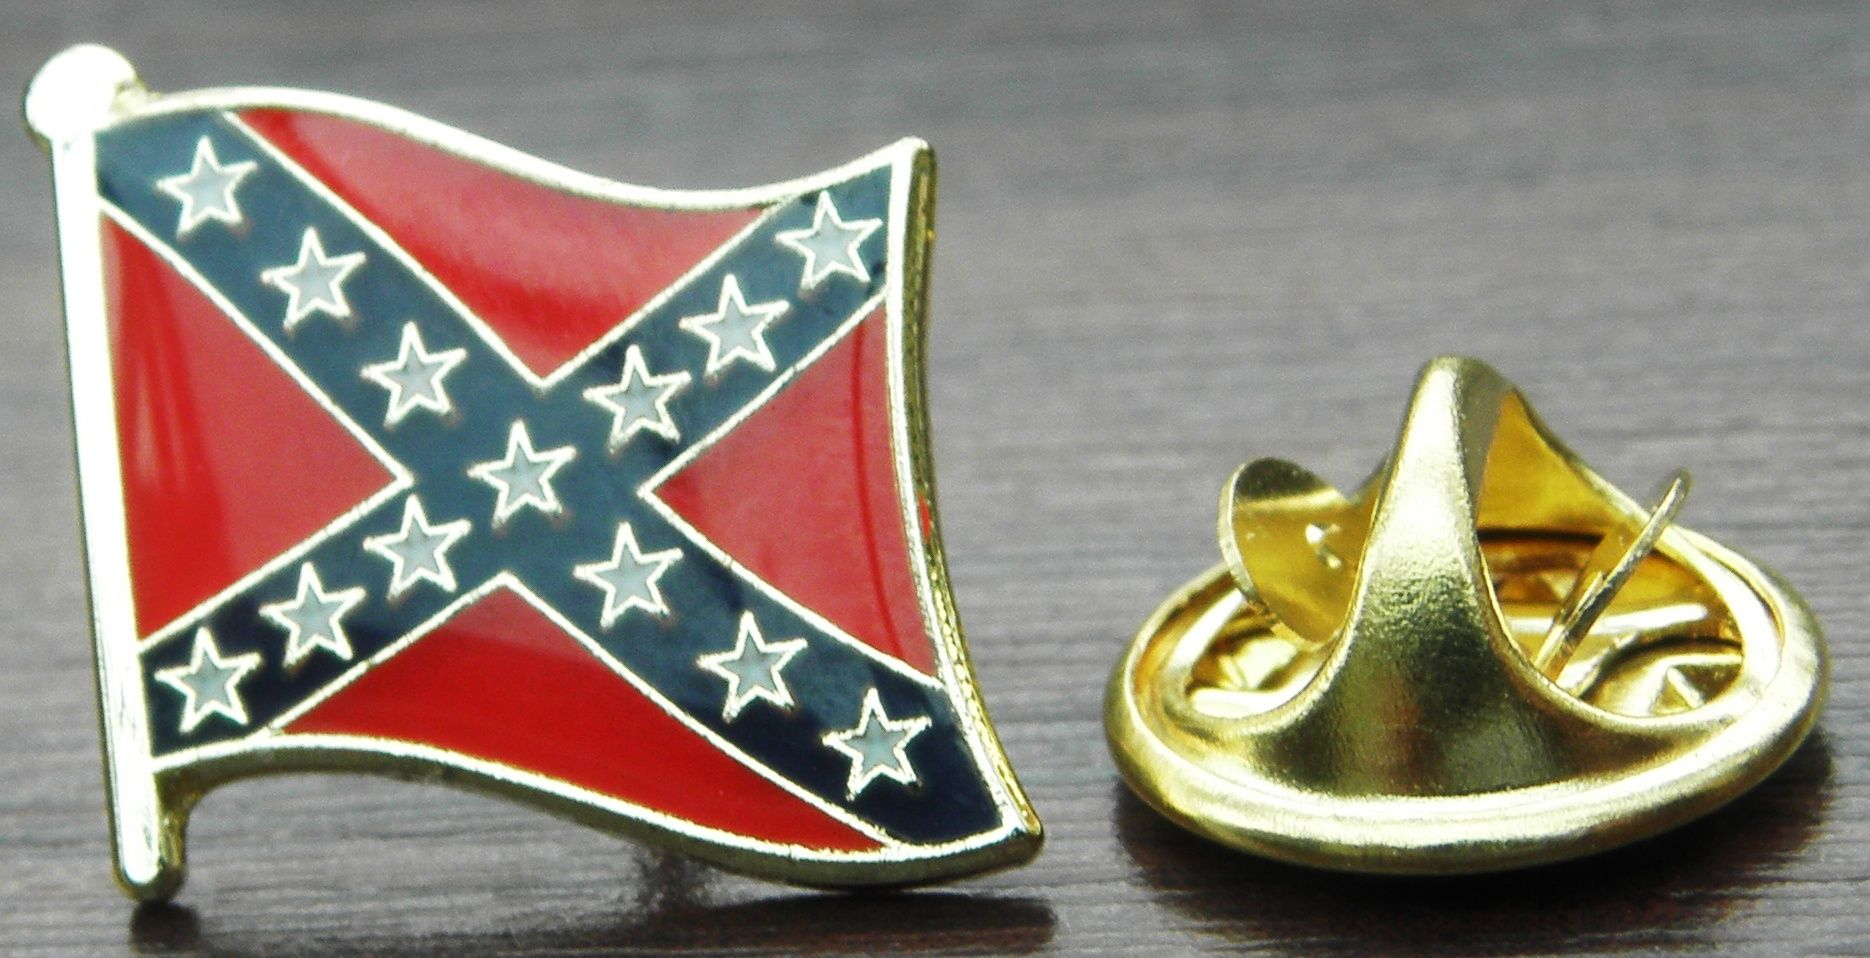 10 PCS x Confederate Flag Lapel Hat Cap Tie Pin Badge Rebel Gift Dixie Gift Souvenir